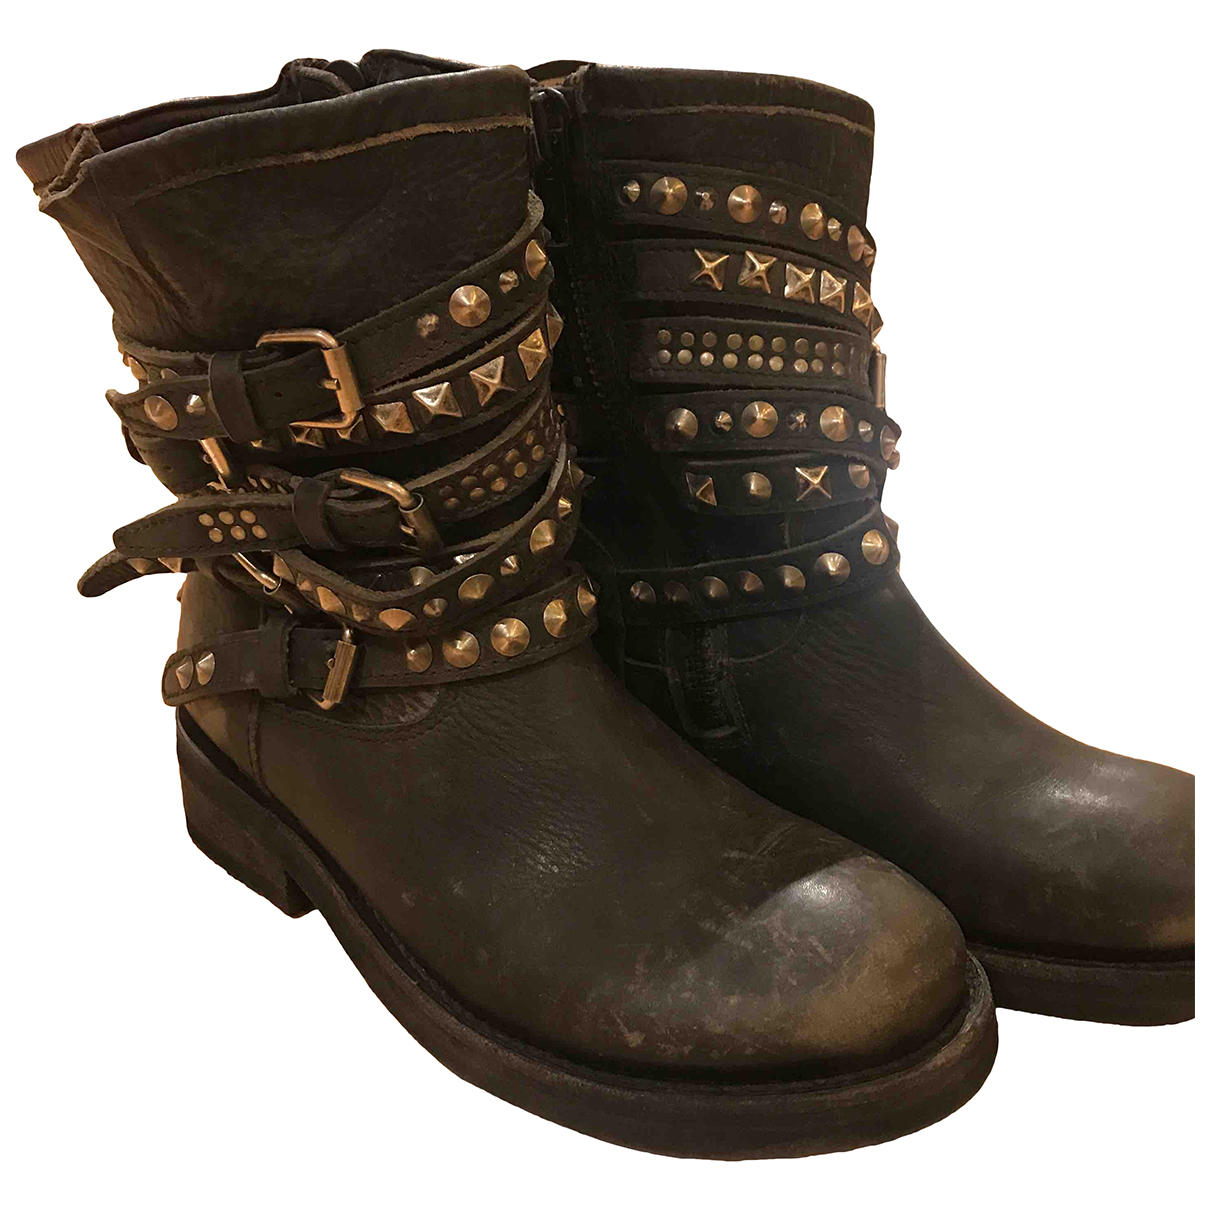 Ash N Black Leather Ankle boots for Women 38 EU